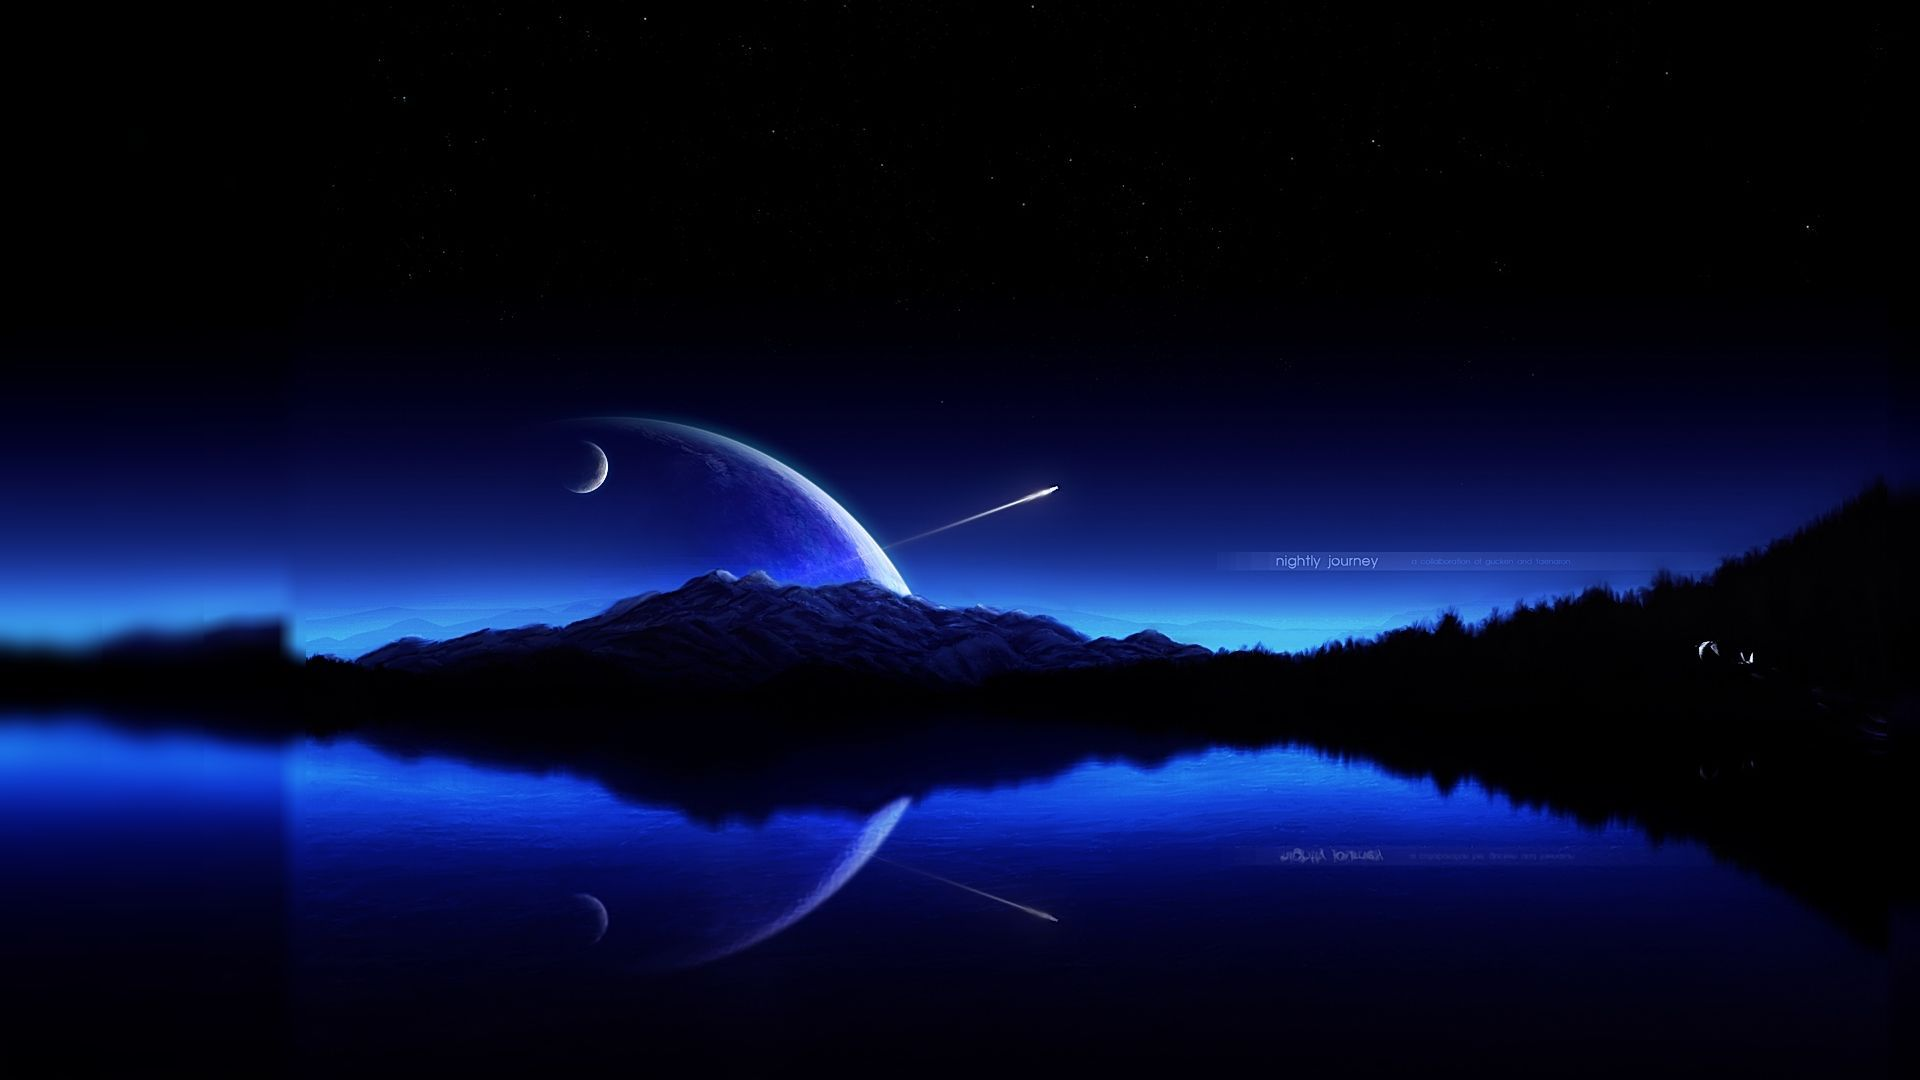 Hd wallpaper night - Providing You Widescreen High Defination Hd Wallpapers Hd Free Choose One Of The Best Wallpapers